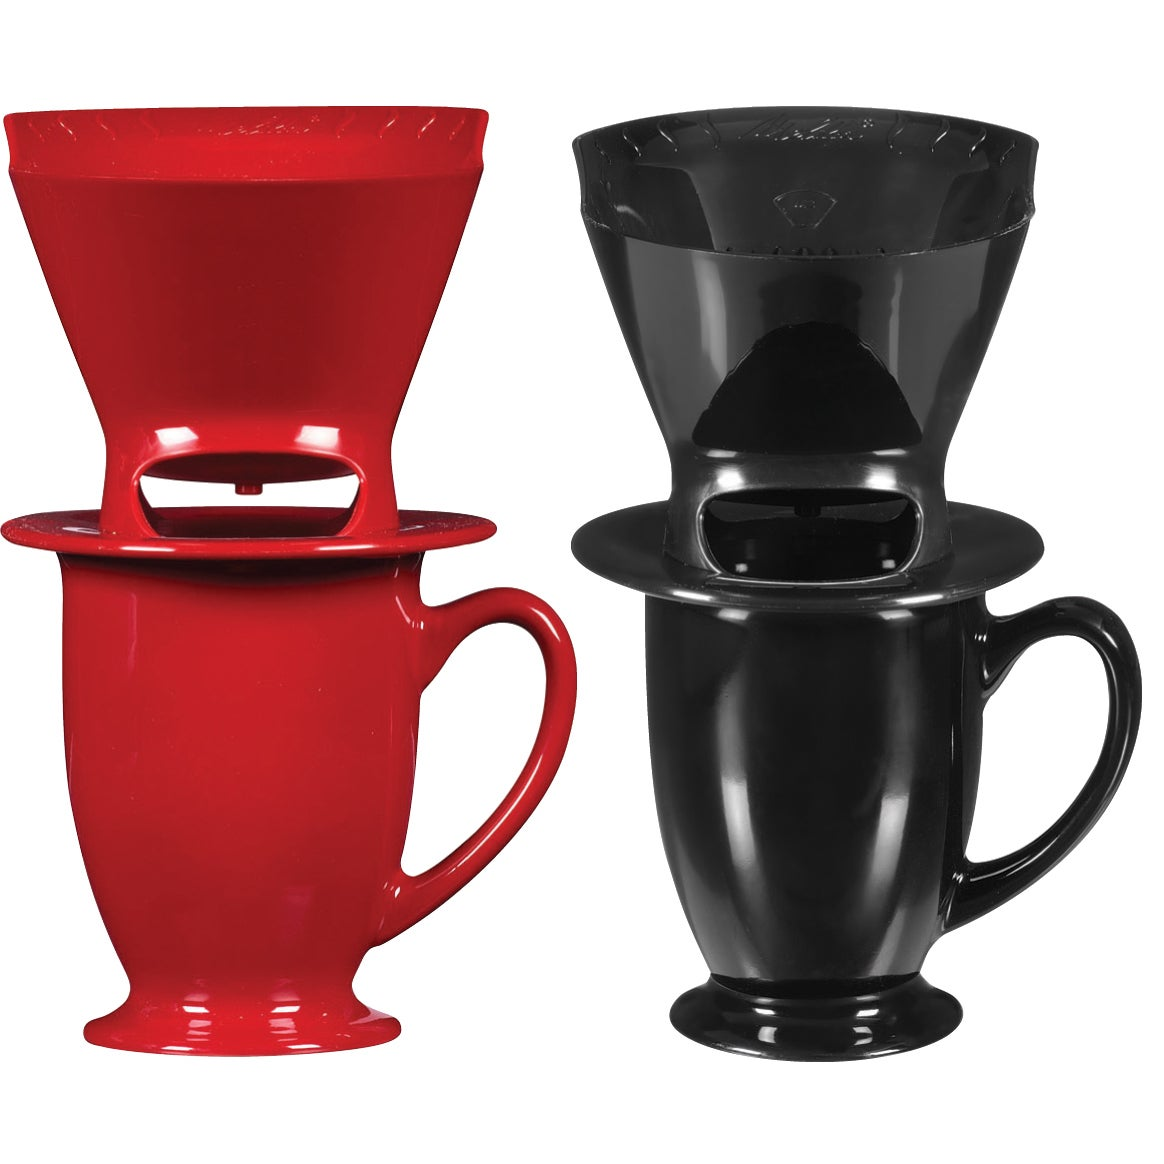 Melitta 64012 1 Cup Pour-Over Coffee Brewer With Mug (Cof...